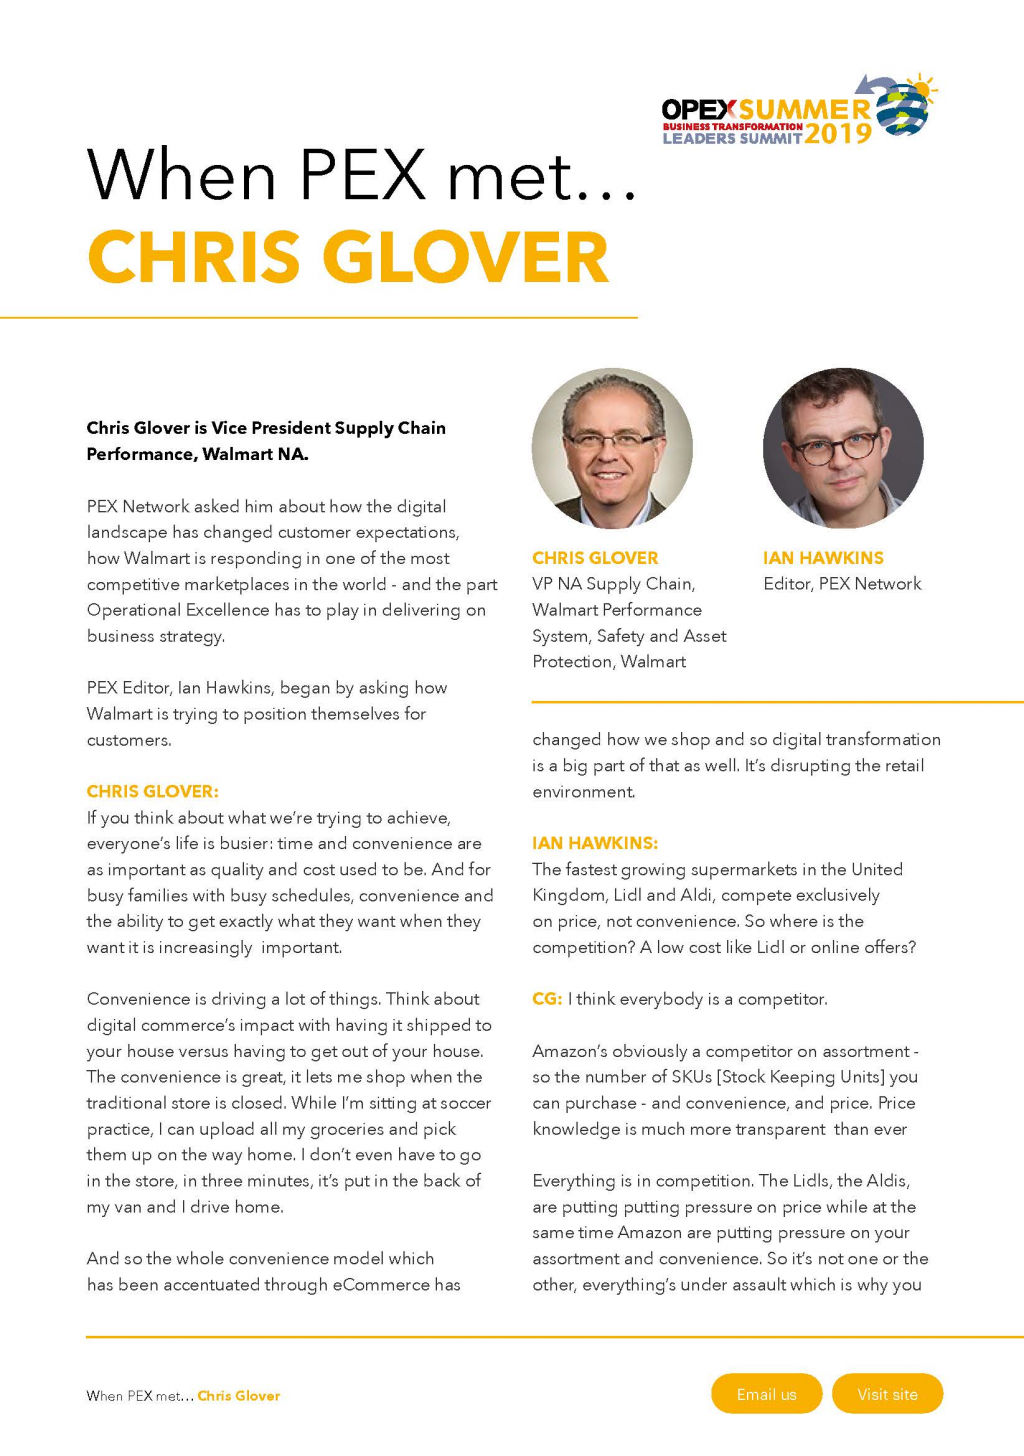 An interview with Chris Glover from Walmart